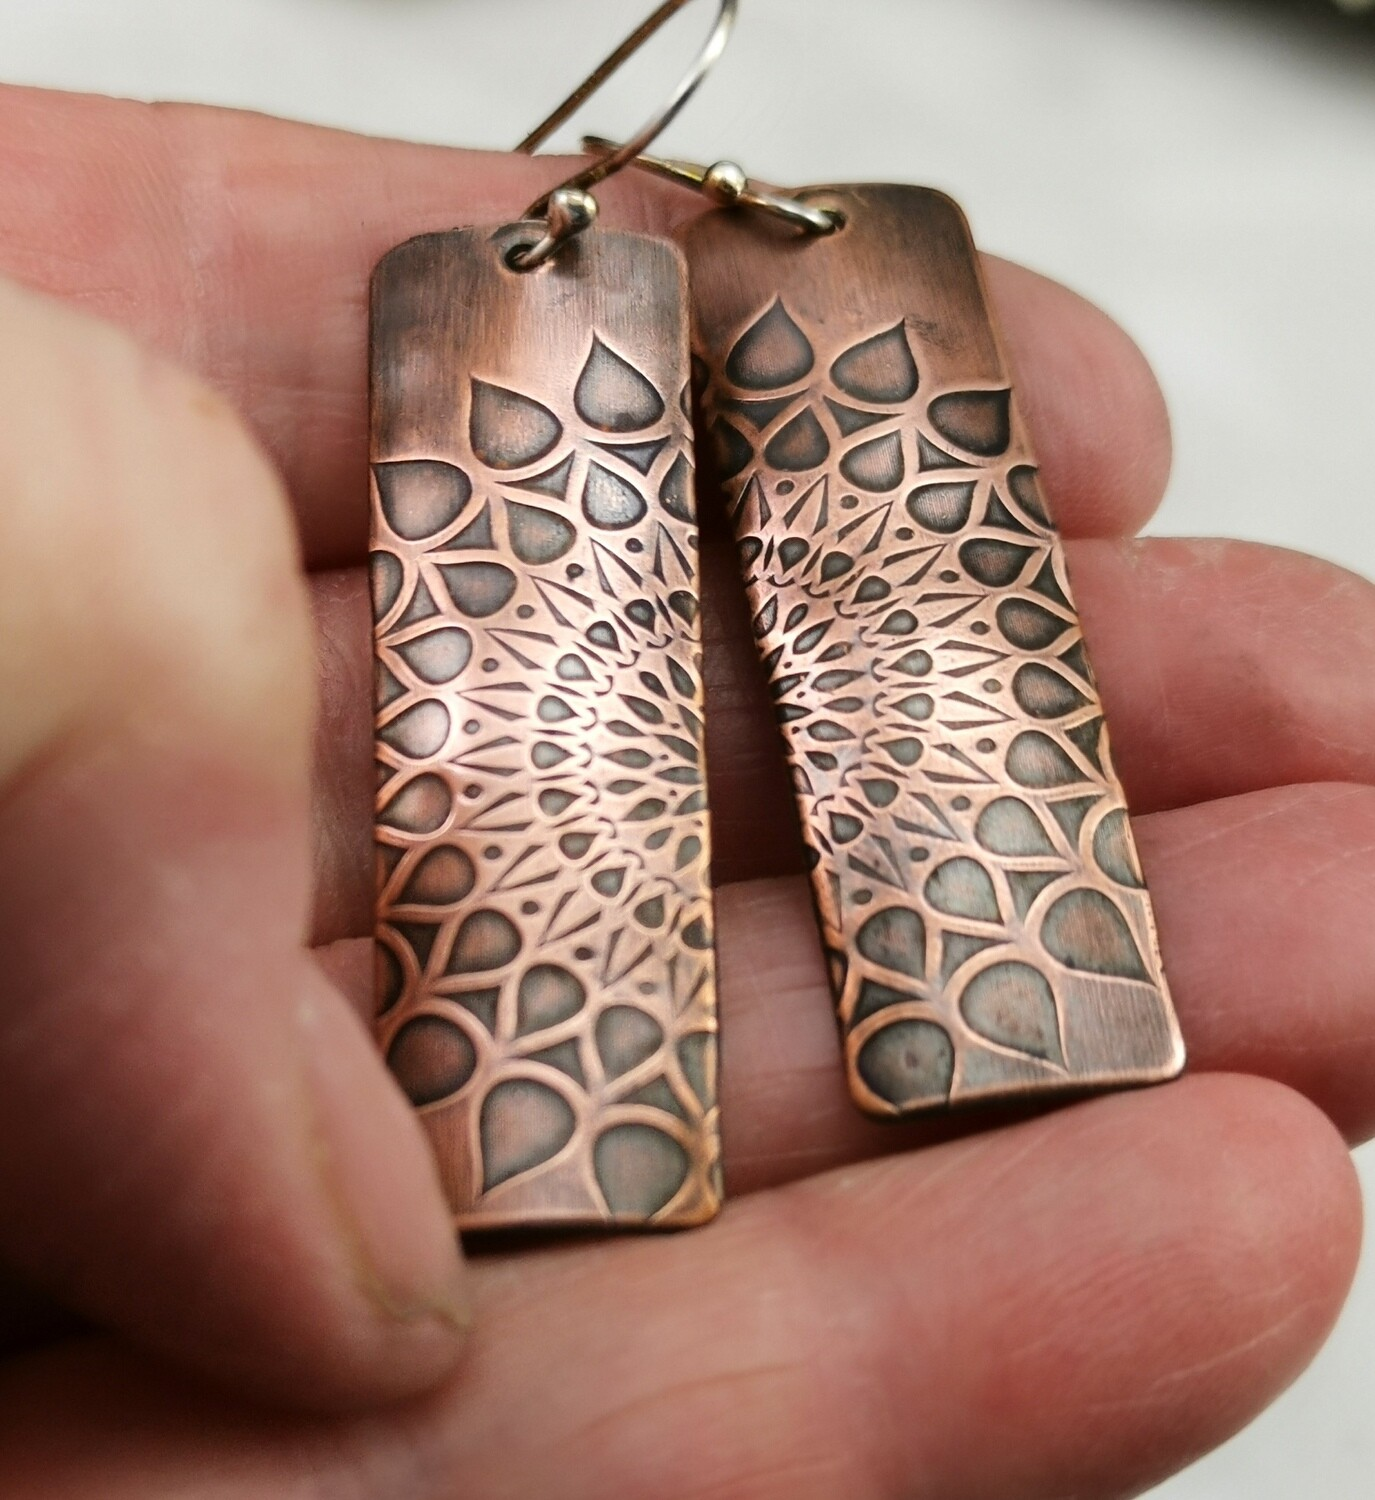 Mandala Jewelry, Mandala Earrings, Copper Jewelry, Handmade, Patterned Metal, Dangle Earrings